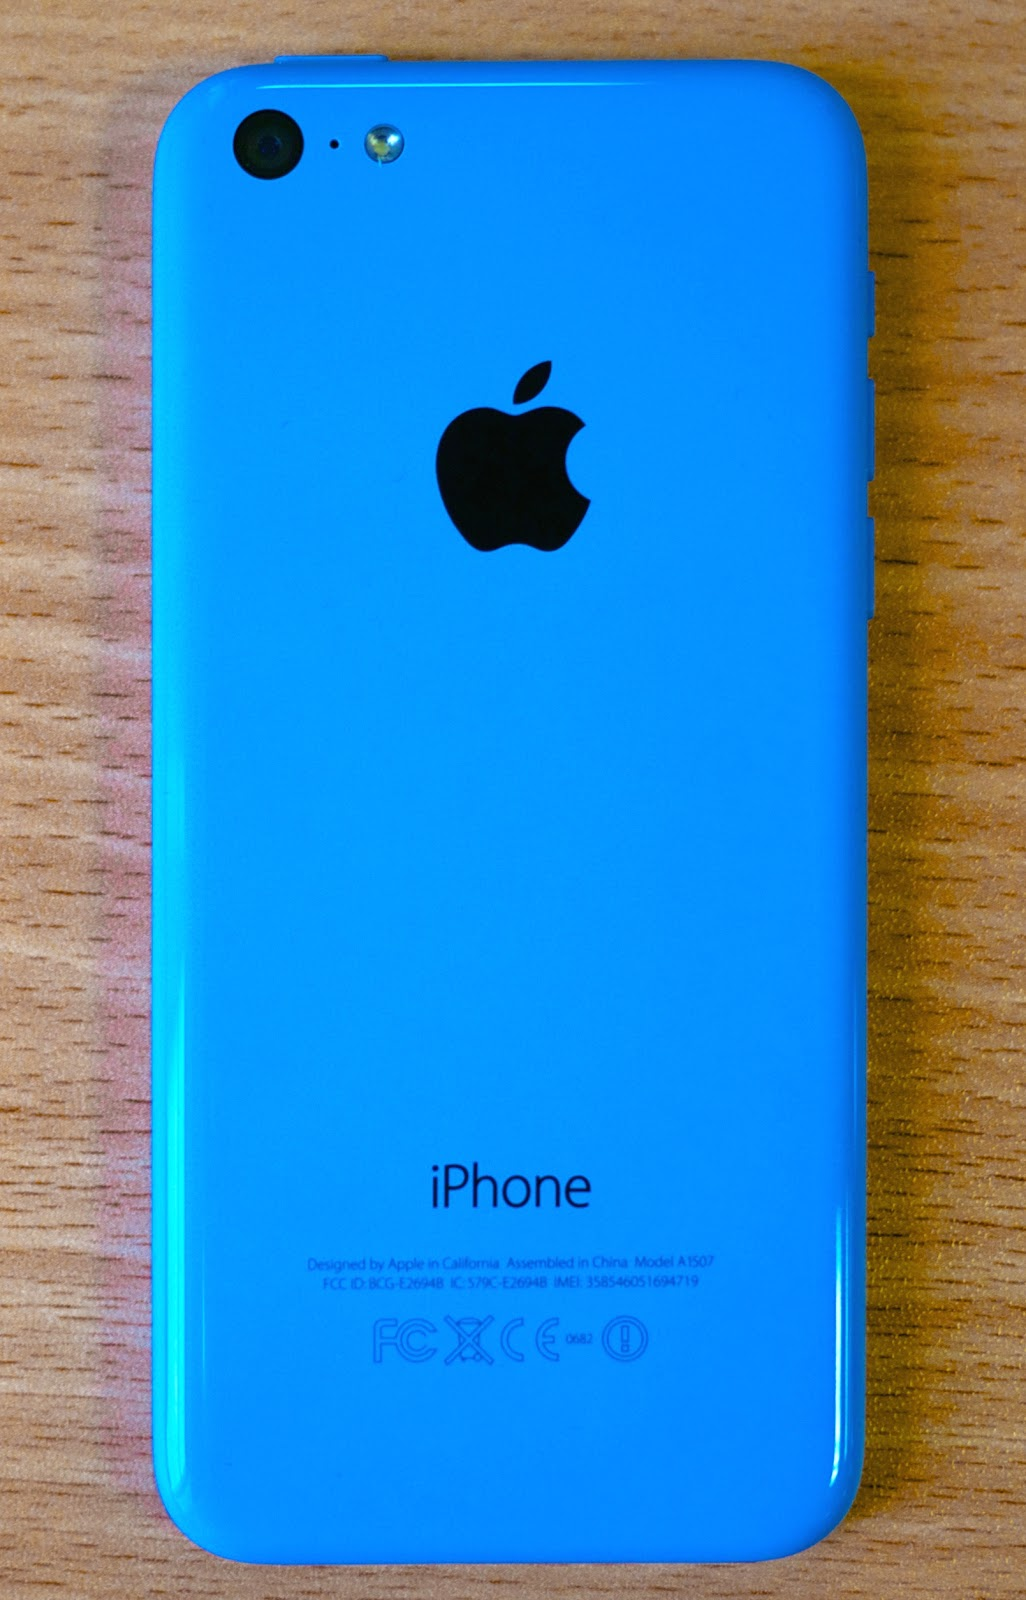 File:iPhone 5c blue back.jpg - Wikimedia Commons